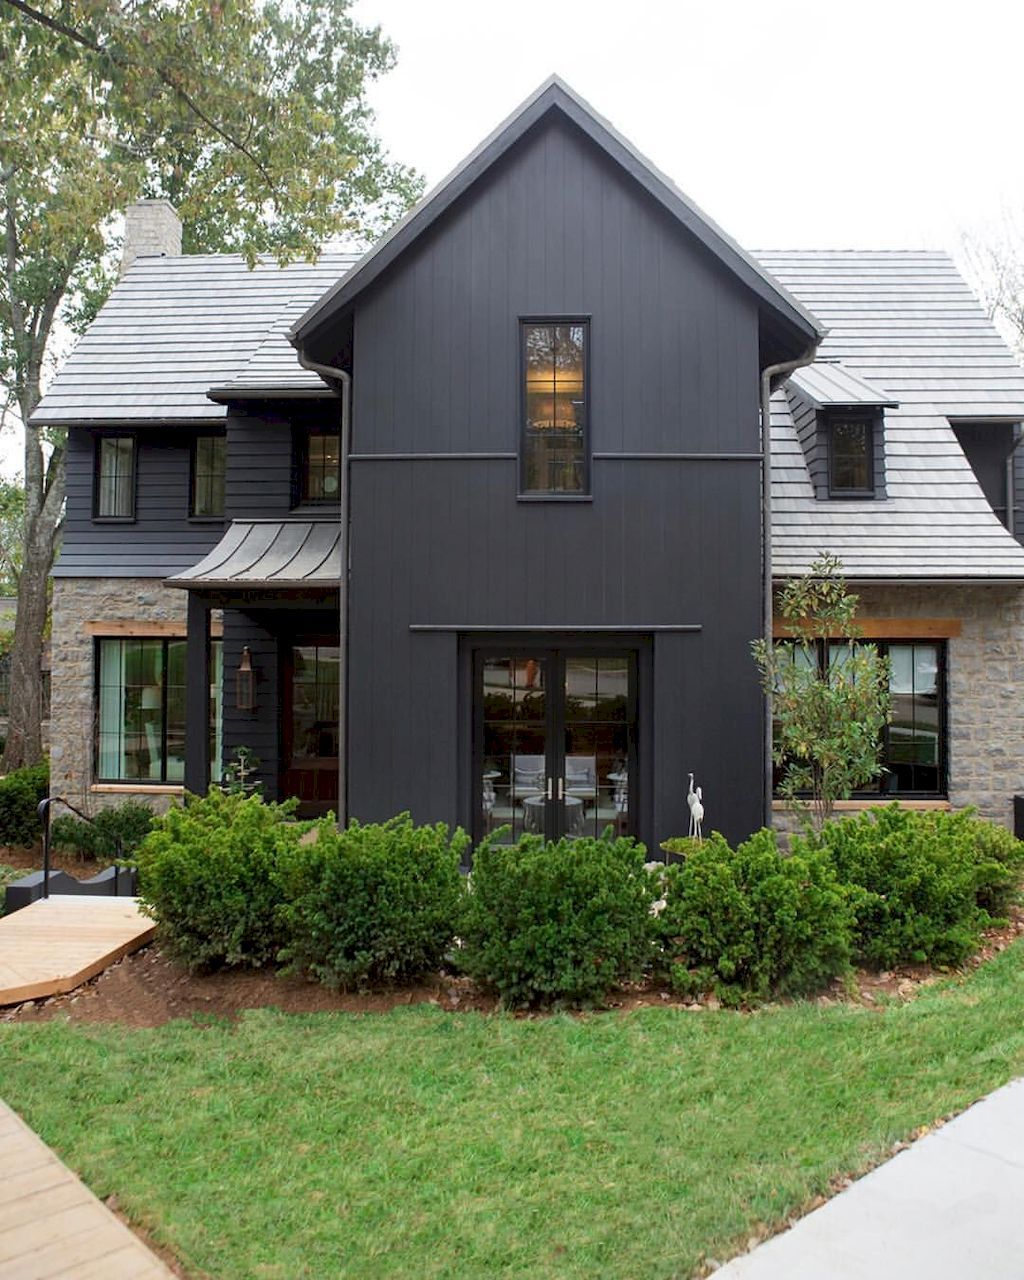 Modern Farmhouse Exterior Designs 11: Pin By Joel Soto On Small Homes